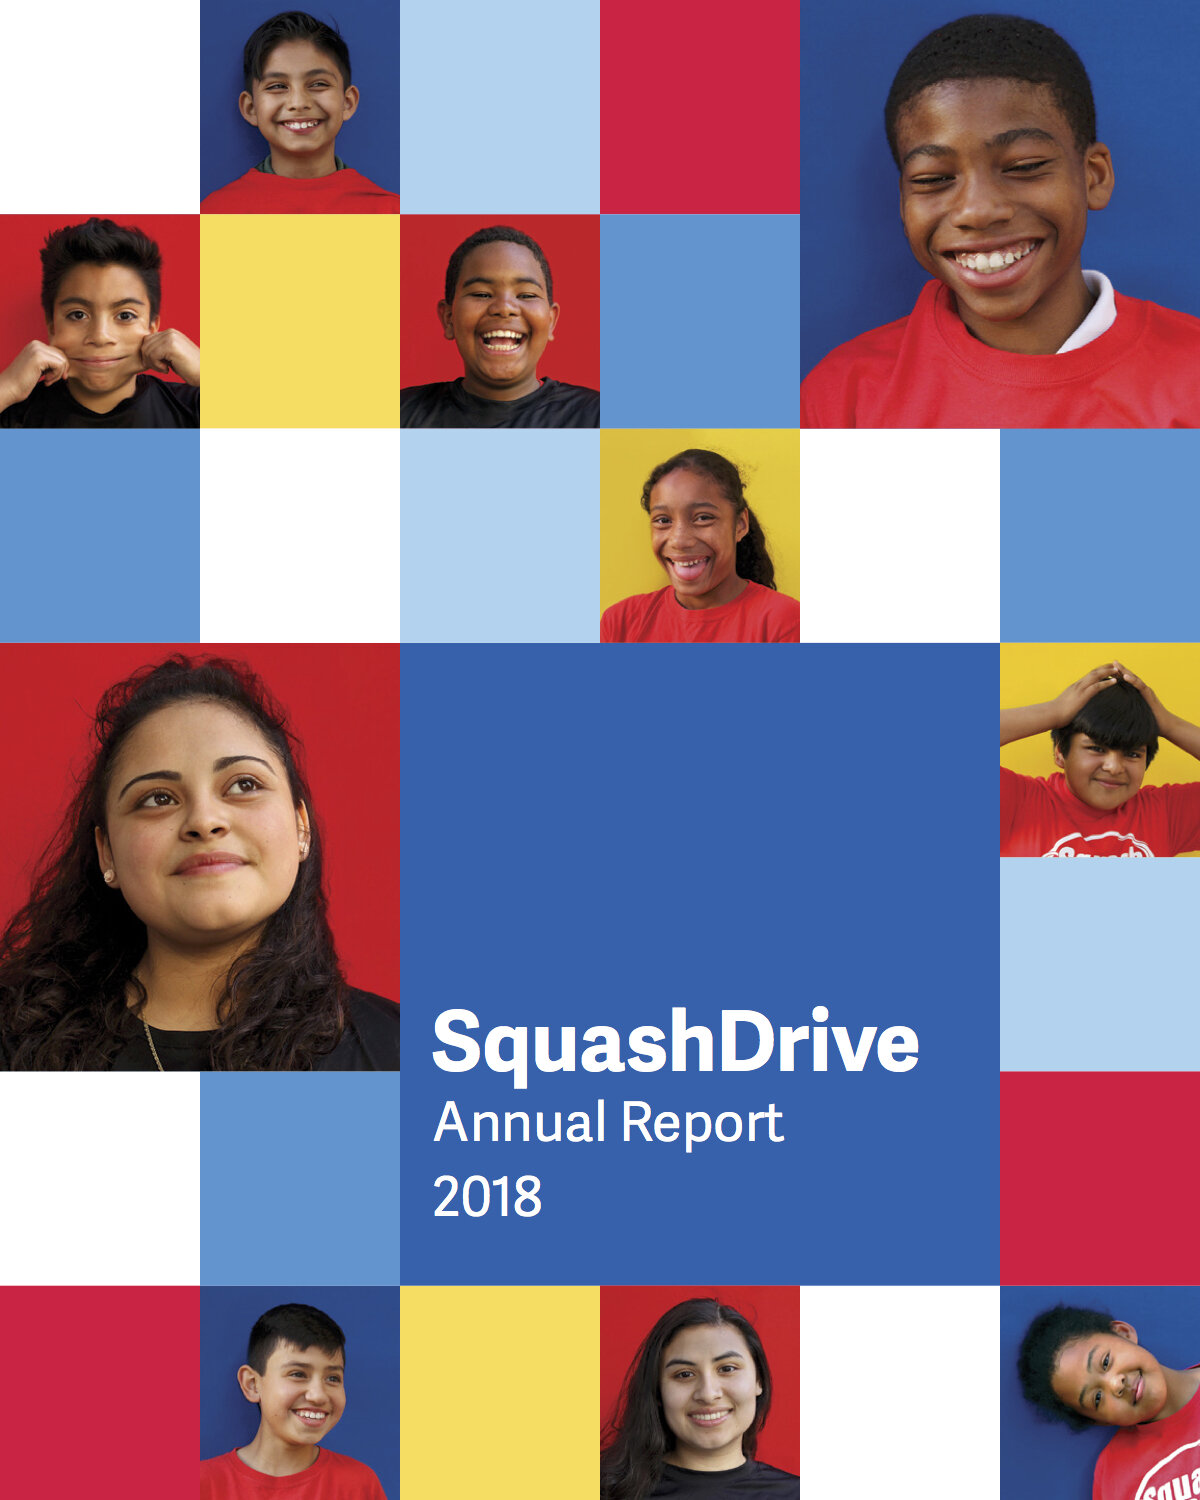 SquashDrive-2018-Annual-Report.jpg